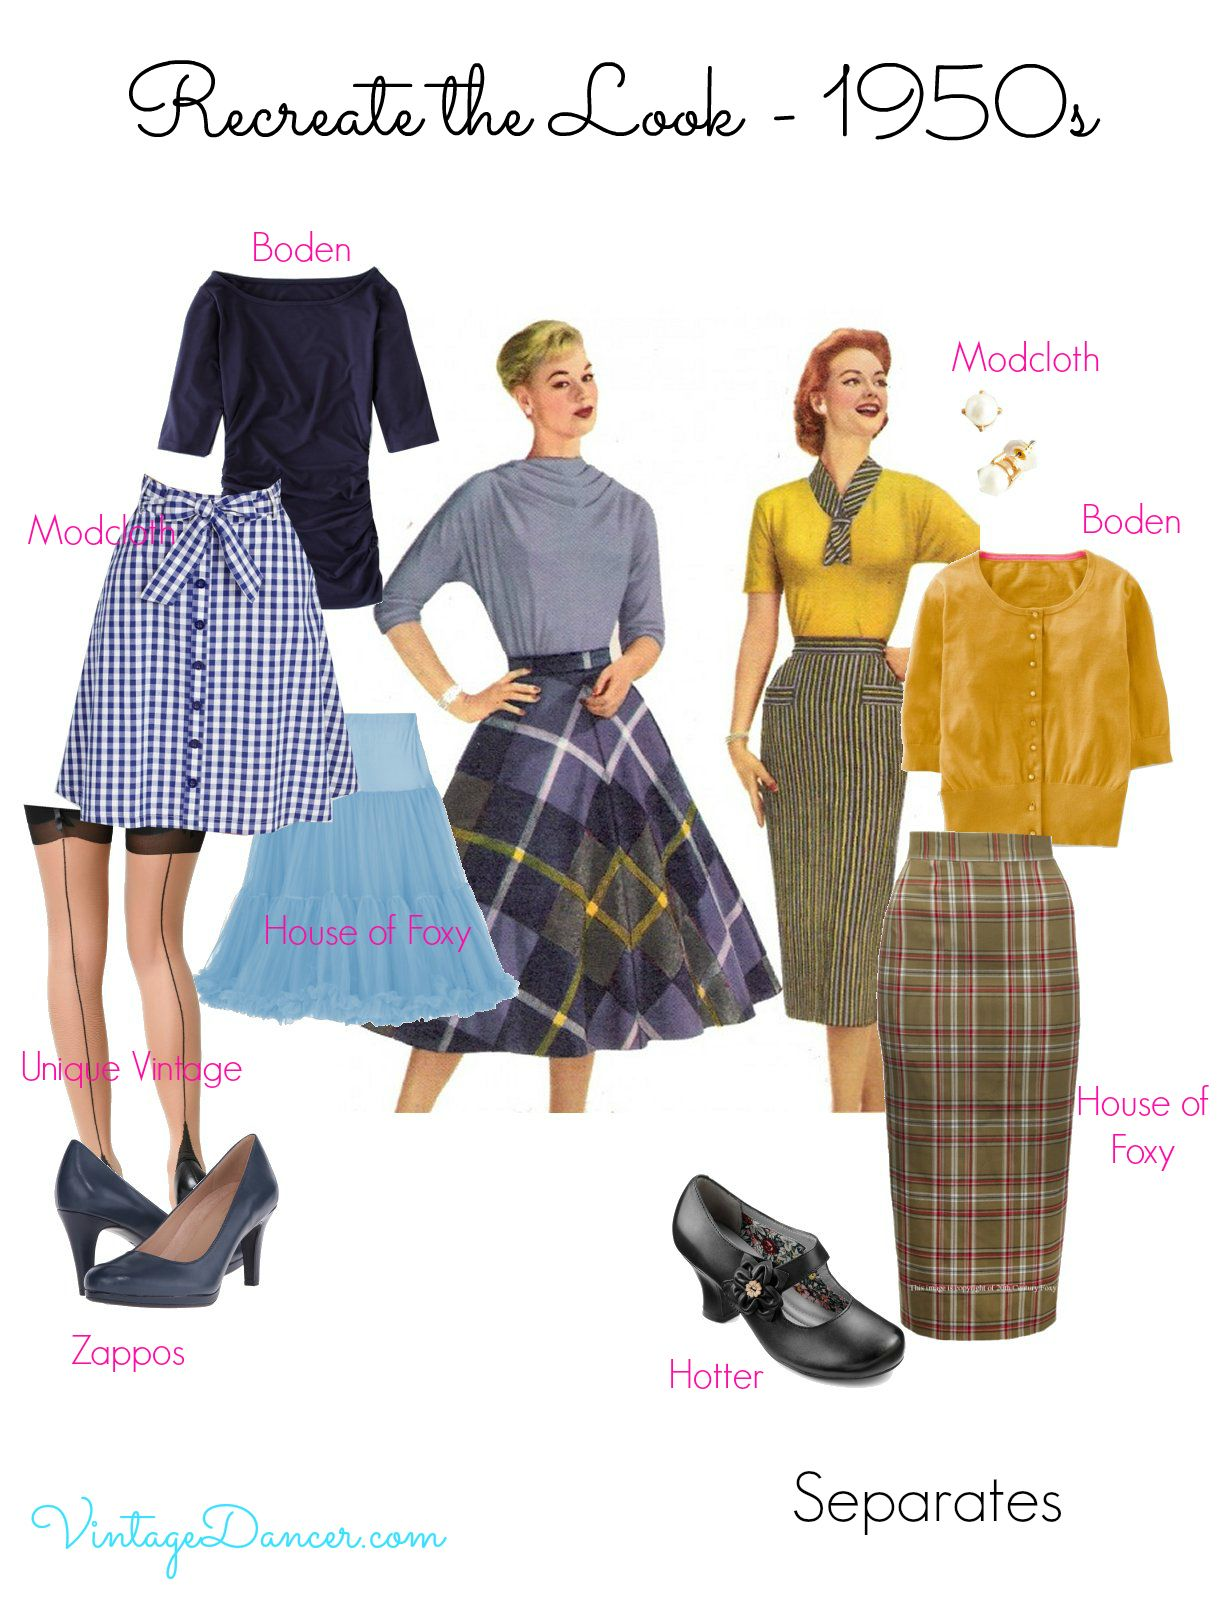 508b84888 1950s Inspired Fashion: Recreate the Look - today's pieces that might work